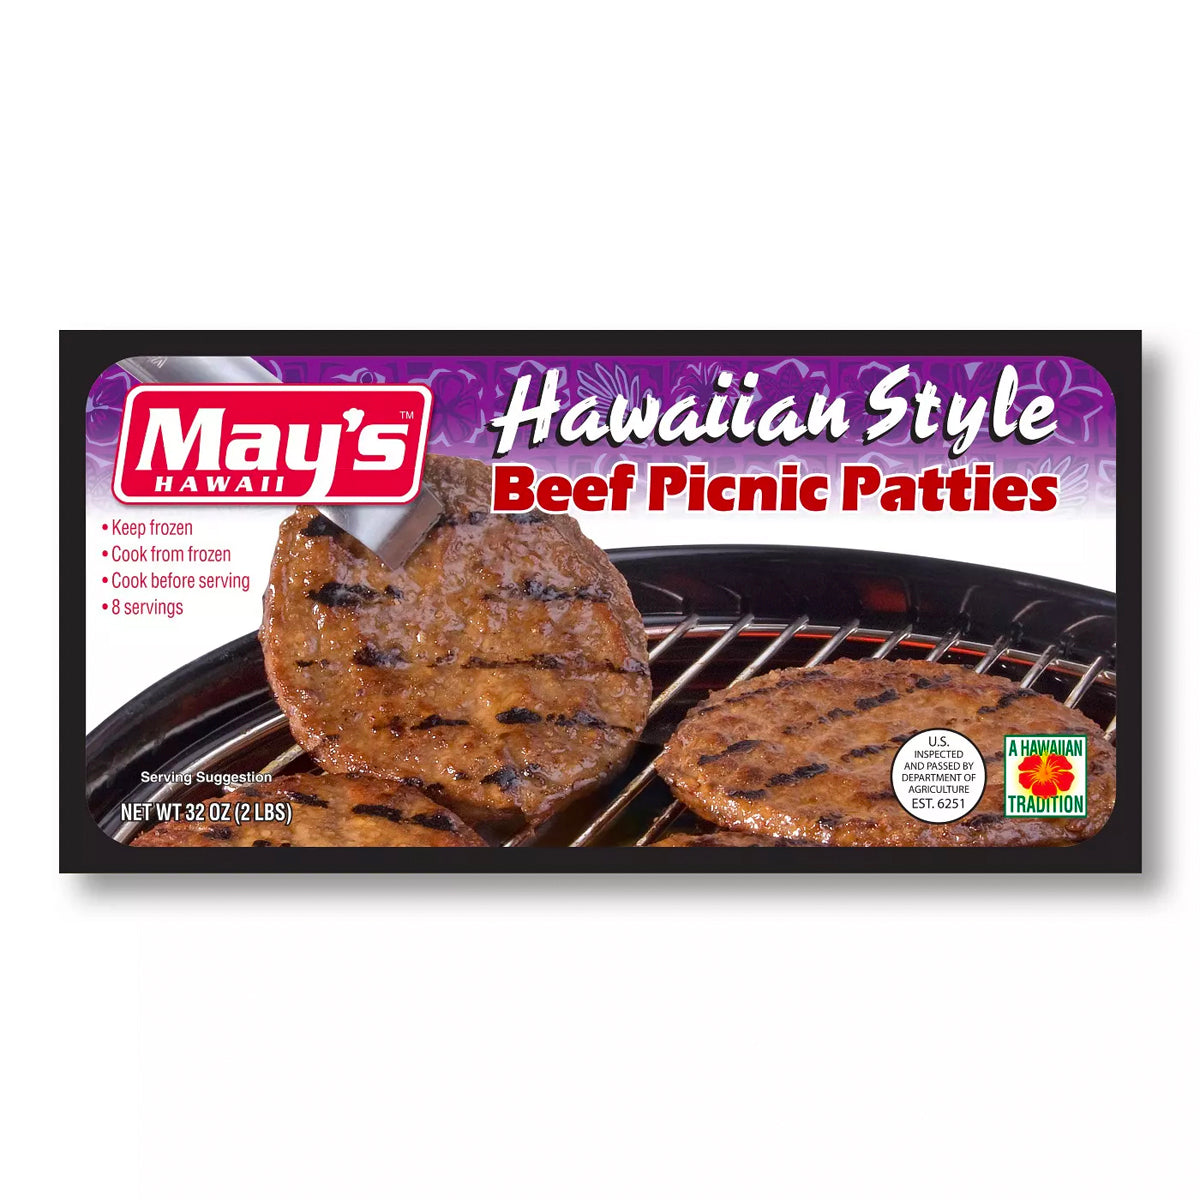 May's Hawaiian Style Picnic Beef Patties (2lbs)